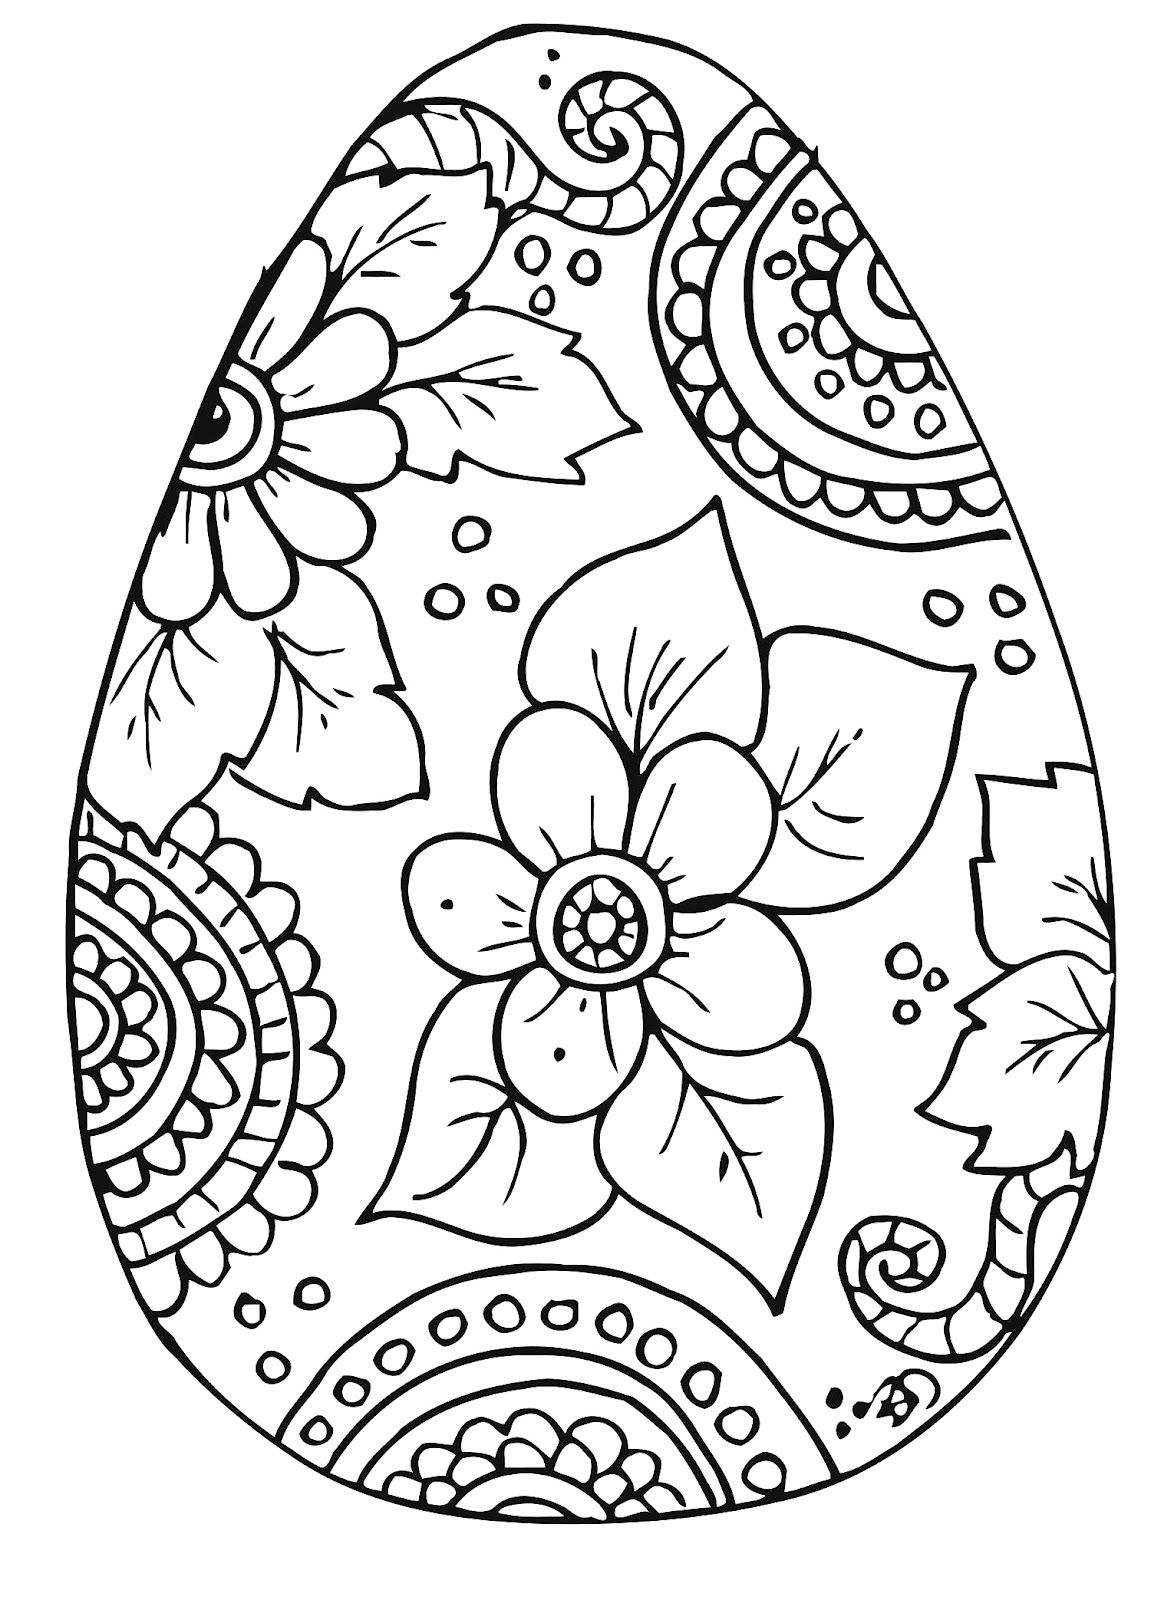 Leuke Kleuropdracht Voor De Lente Lesopdrachten Pasen Easter Easter Egg Coloring Pages Coloring Easter Eggs Easter Coloring Pages